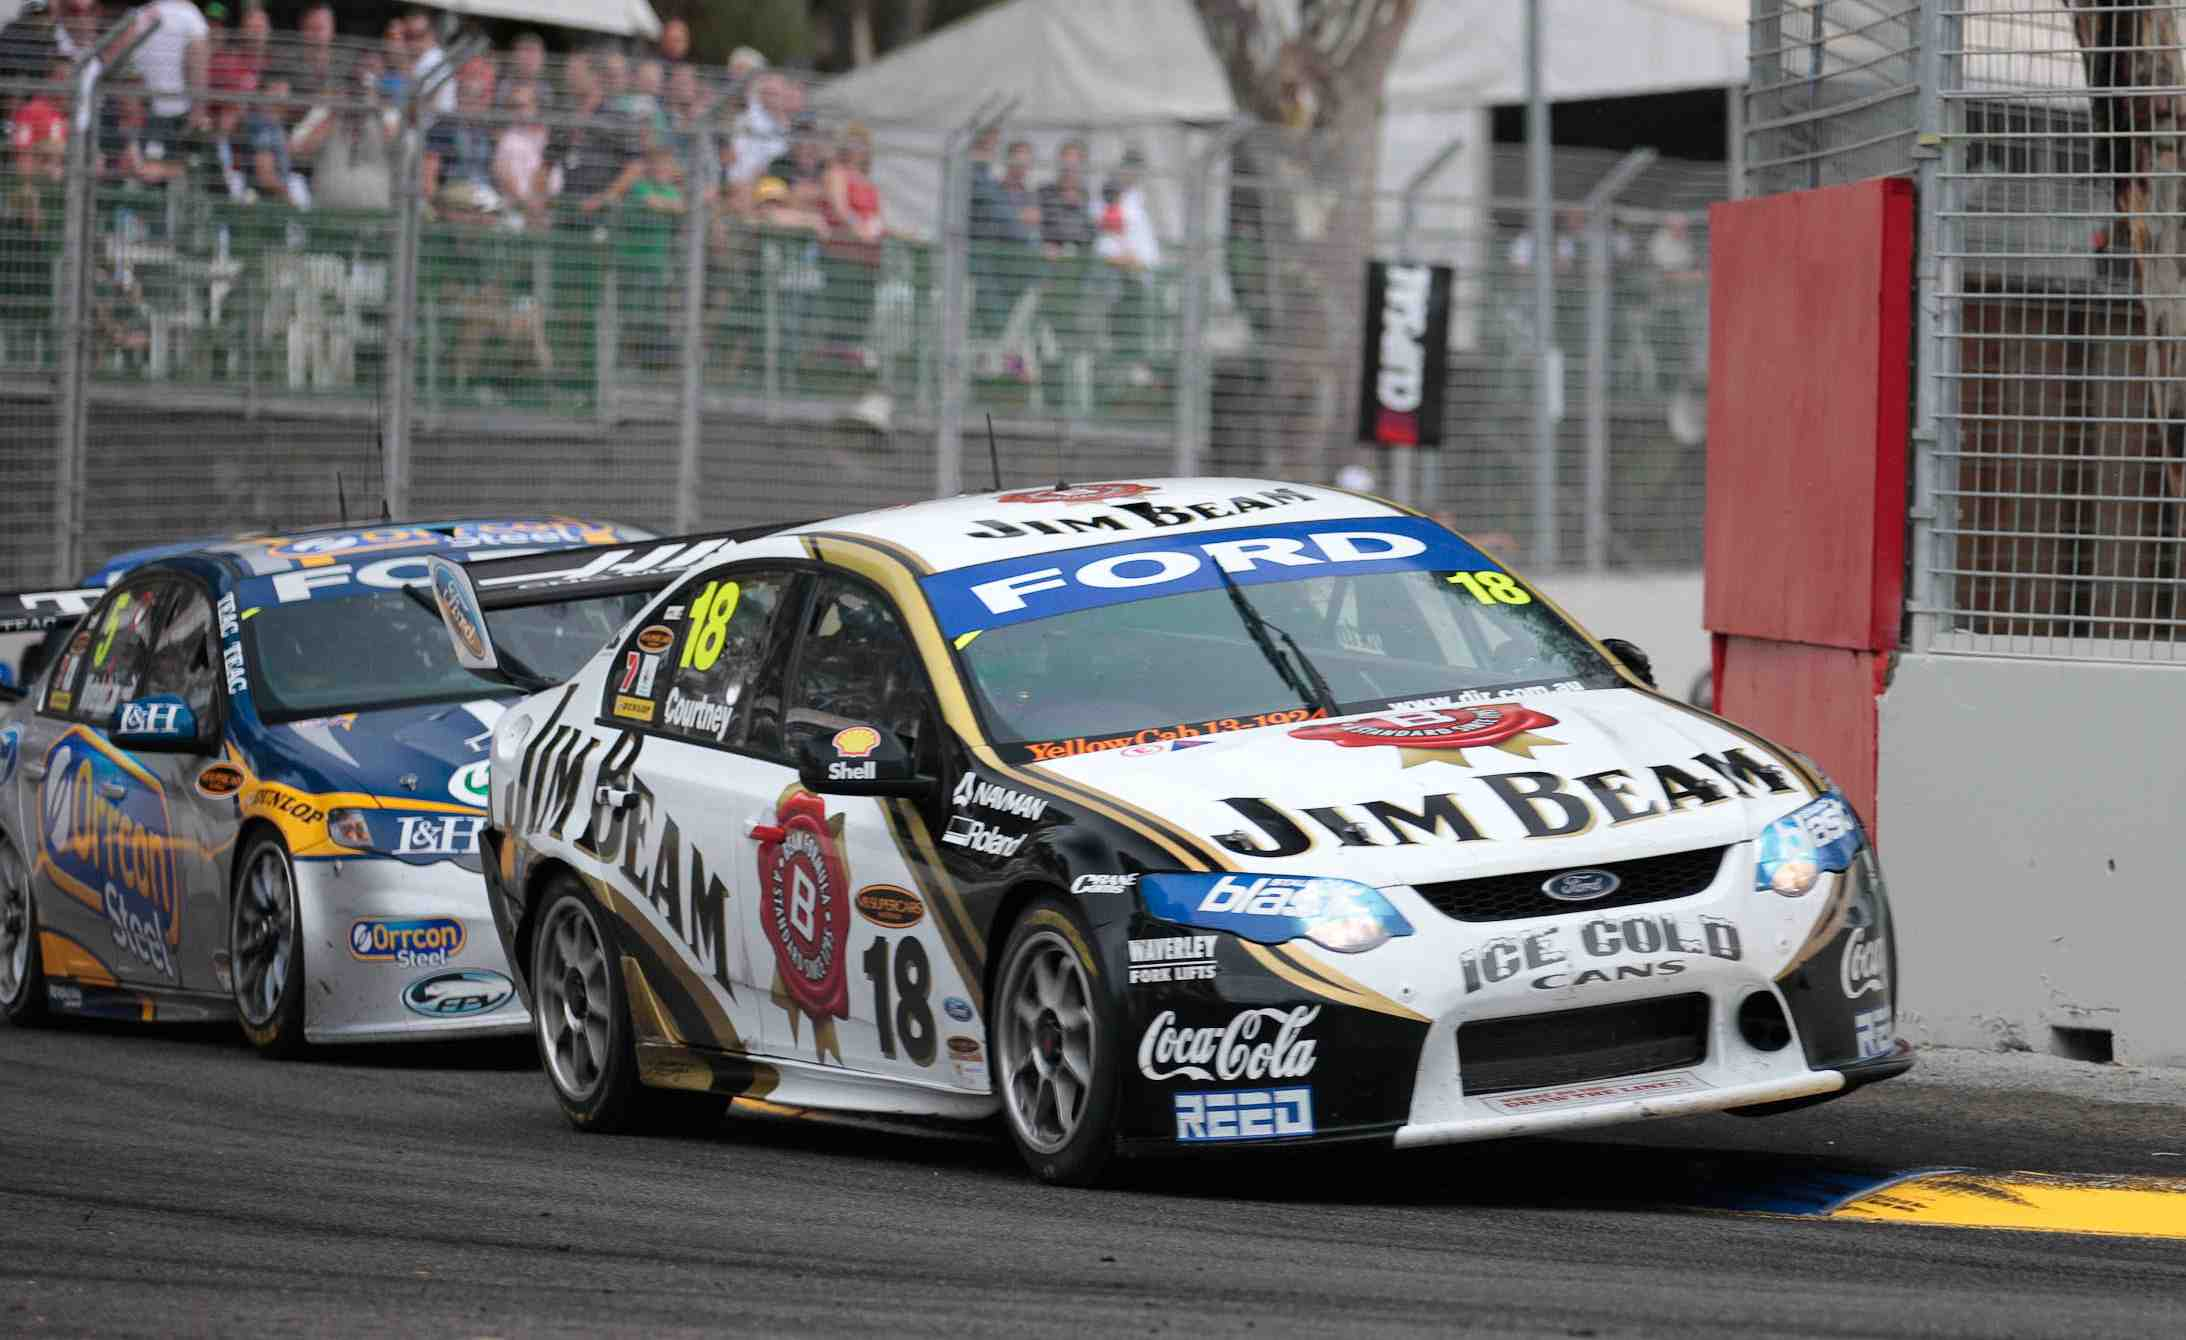 New penalty proposal for V8 Supercars